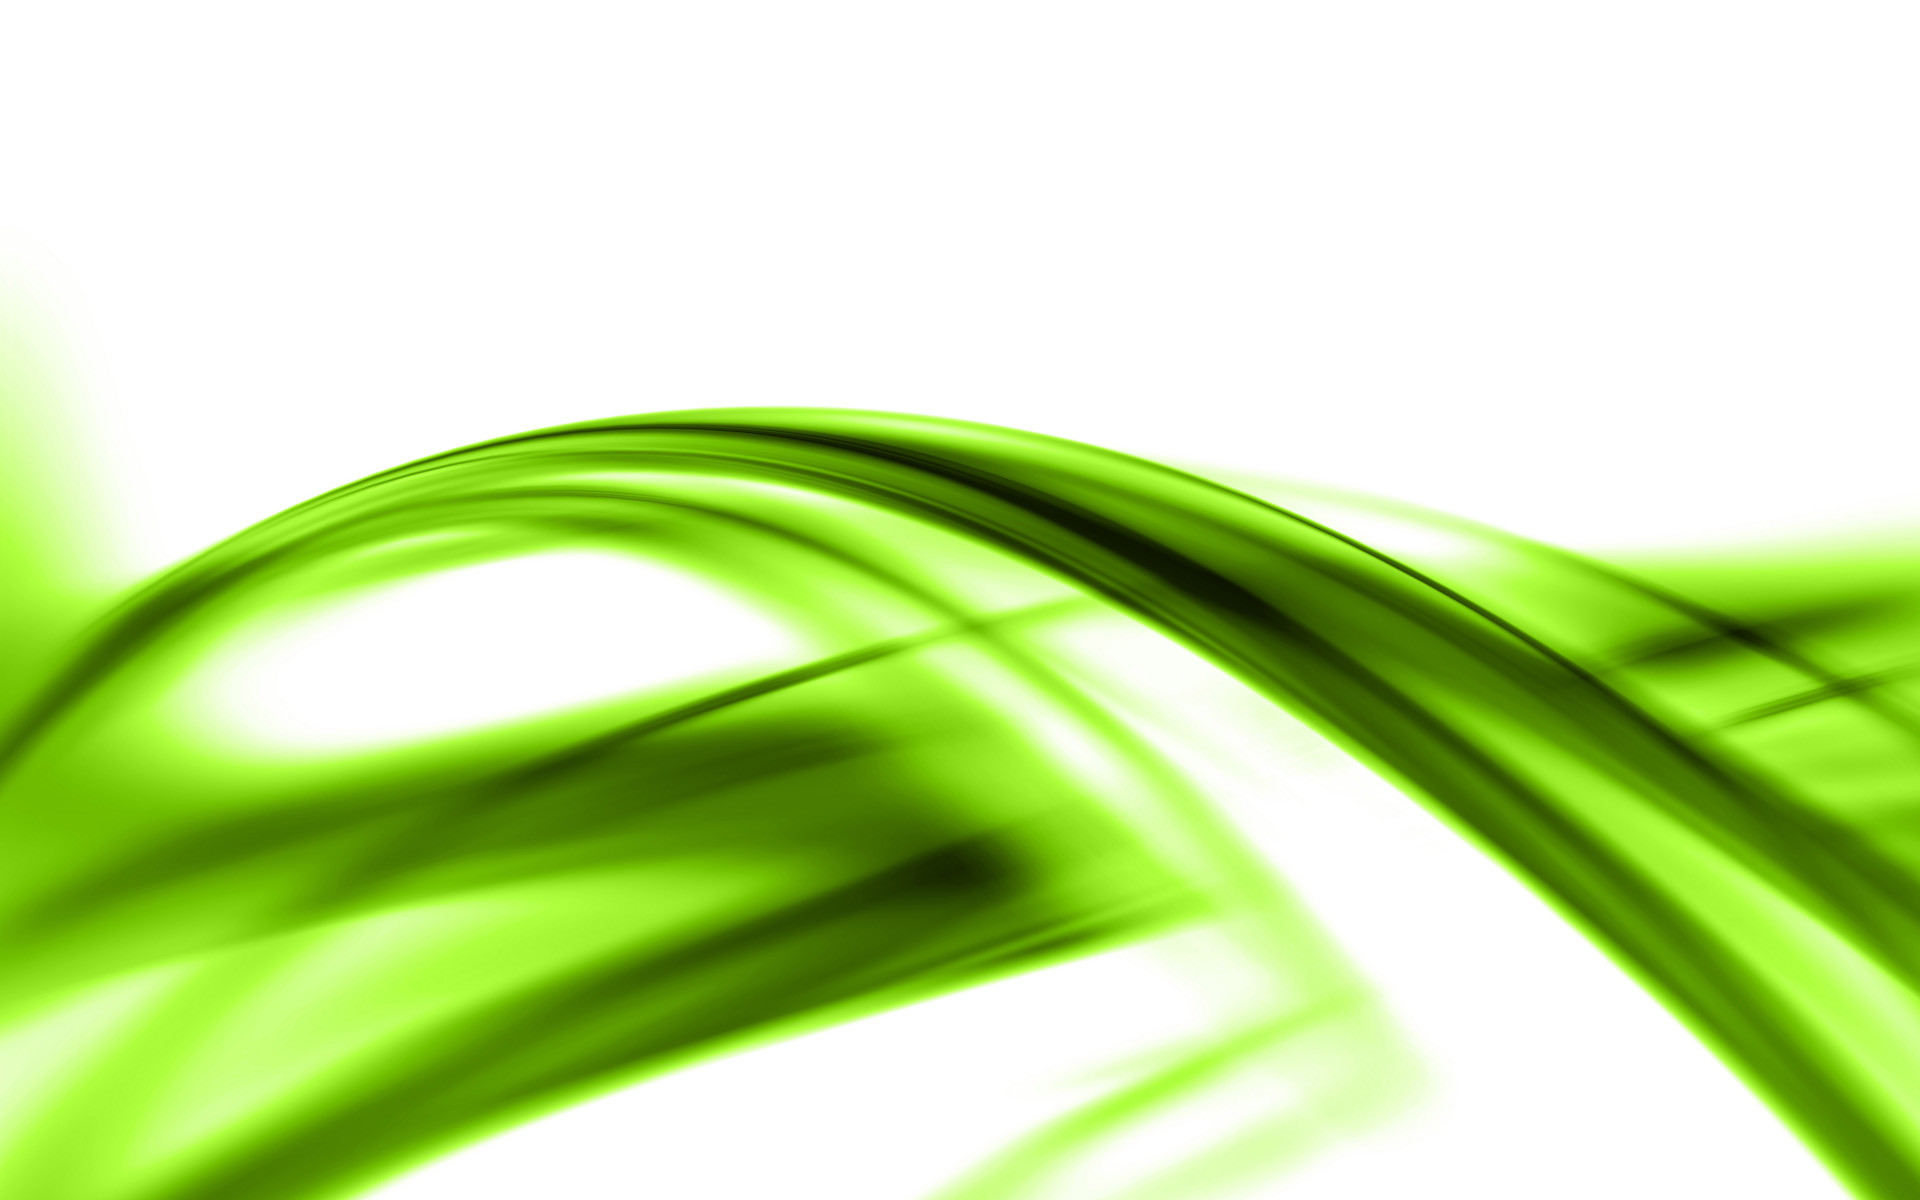 Light Green Backgrounds (44+ images)